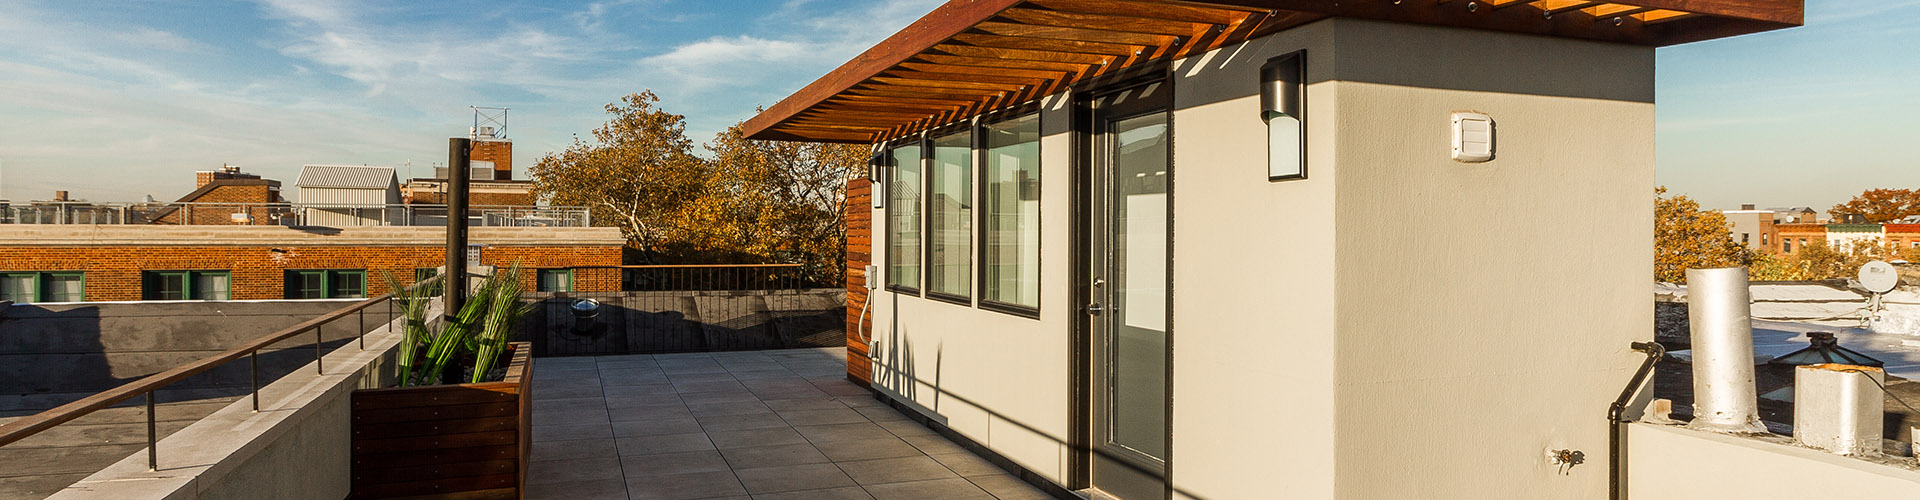 Decking Out Your Roof Deck